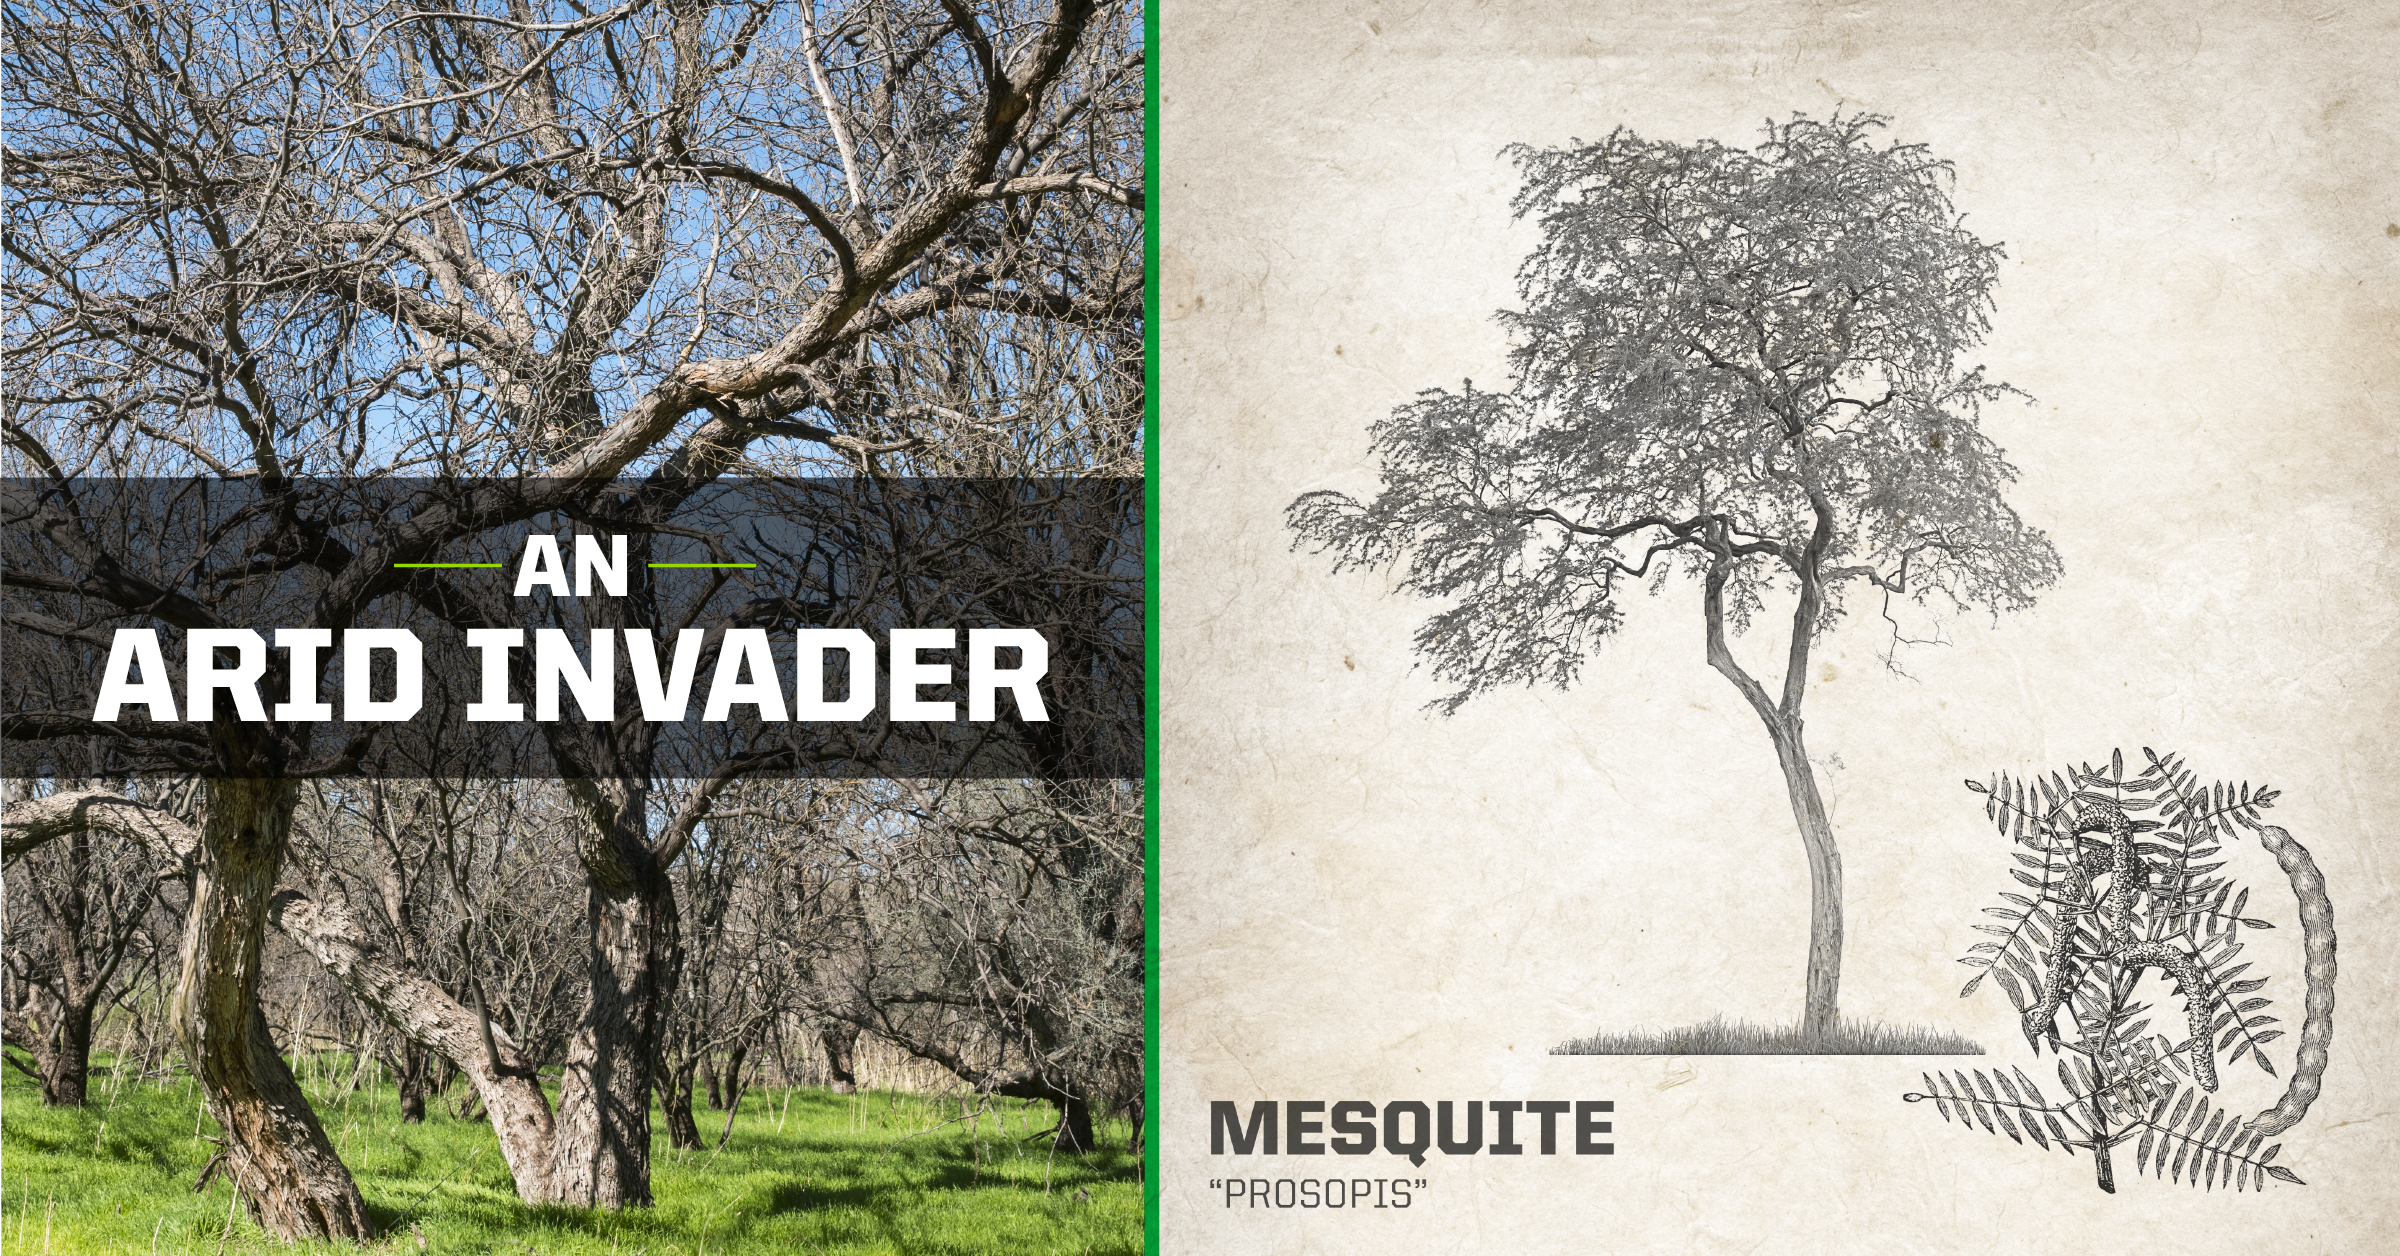 Mesquite Tree - An Arid Invader